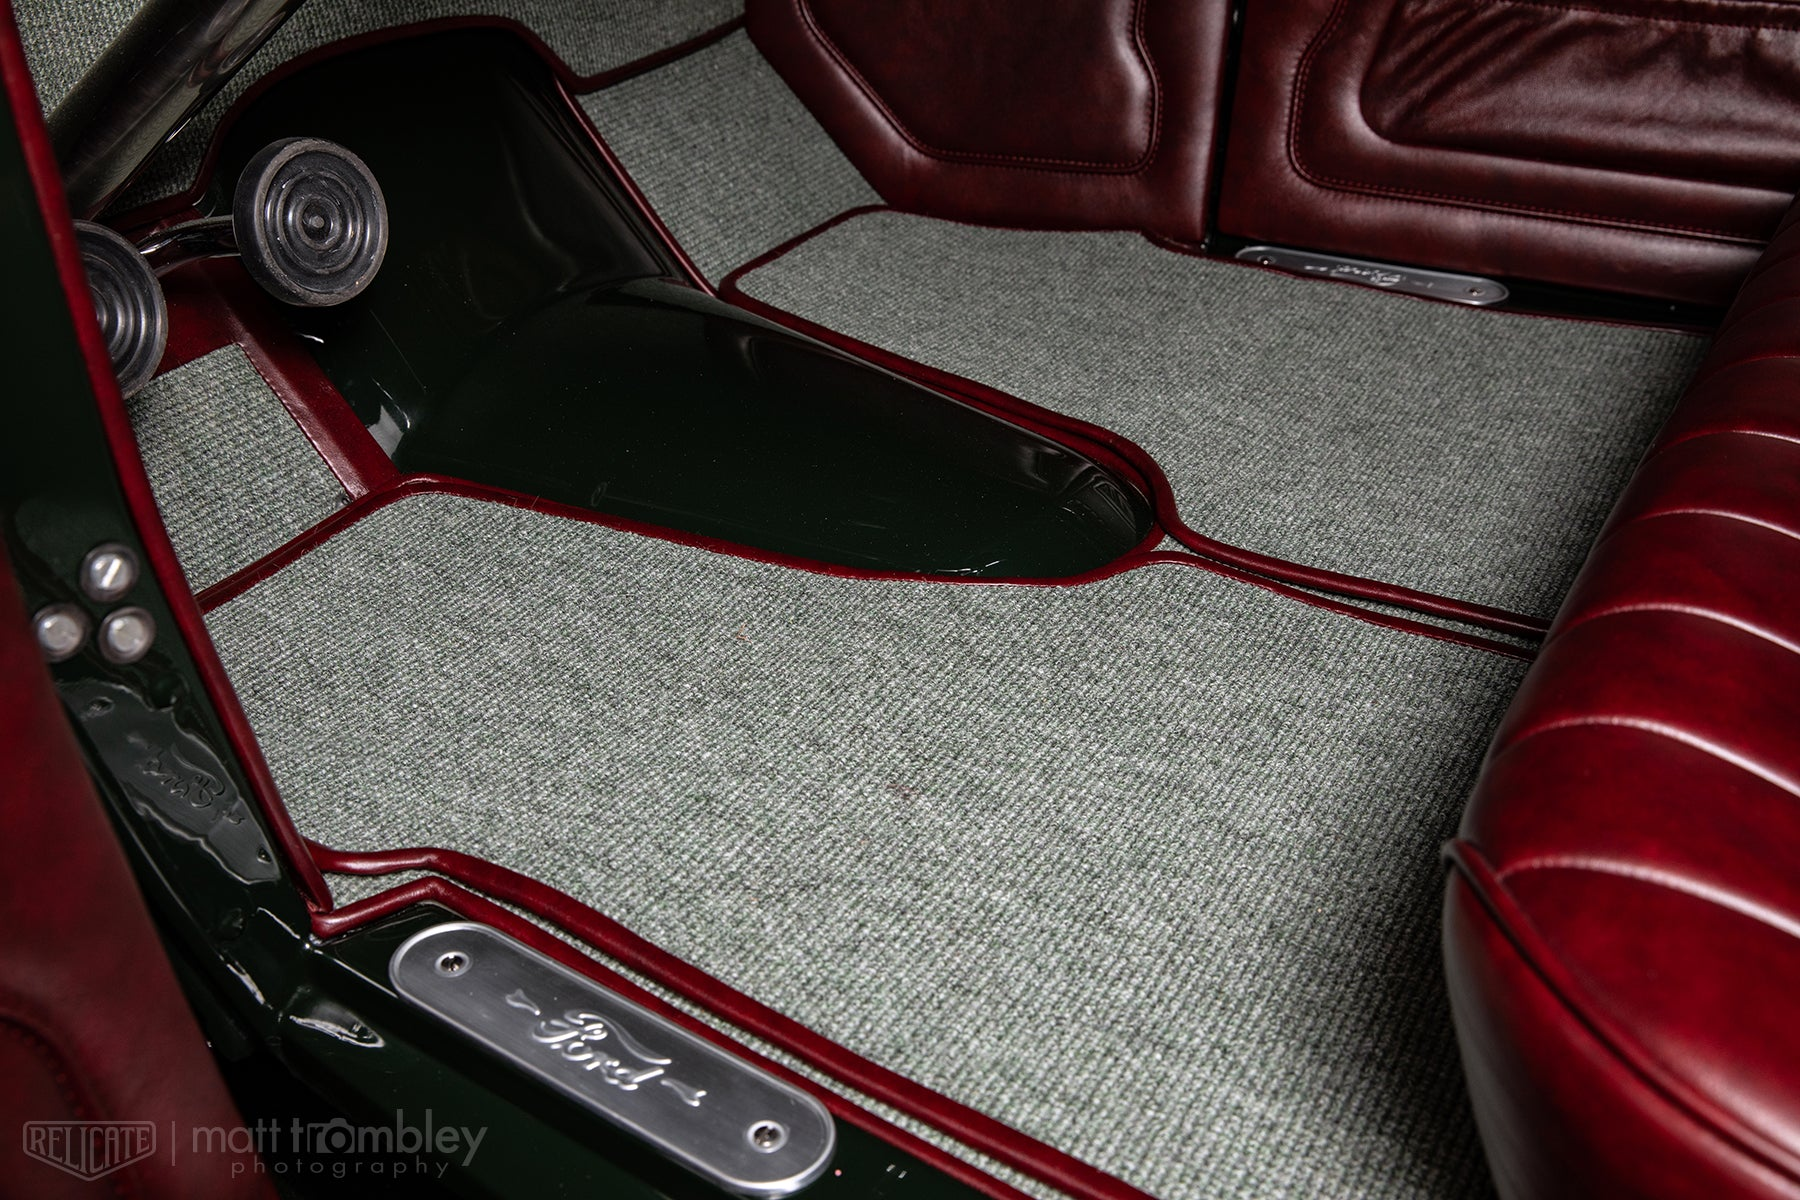 Hilton Hot Rods 1931 Ford Coupe with Relicate Leather Oxblood interior German square weave carpet